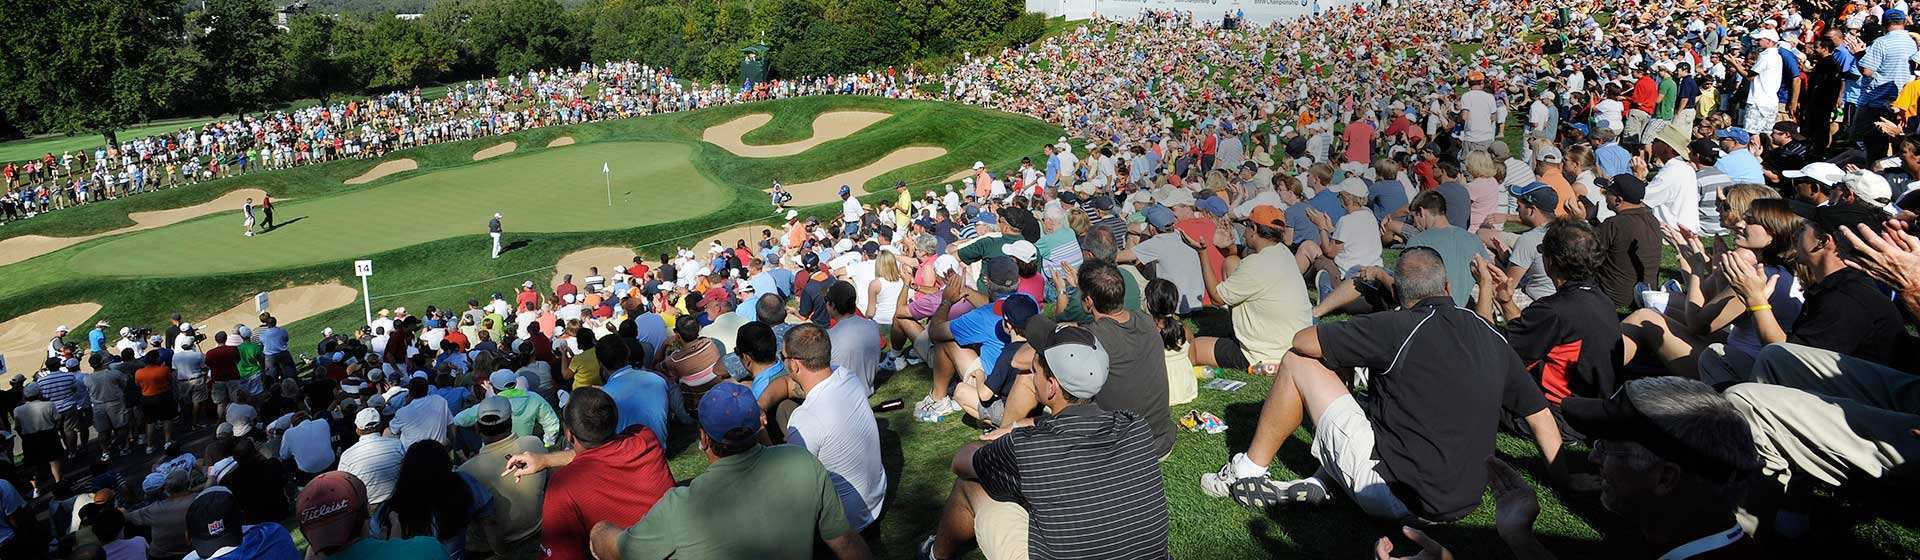 37 Great 2019 Bmw Championship Dates Picture with 2019 Bmw Championship Dates